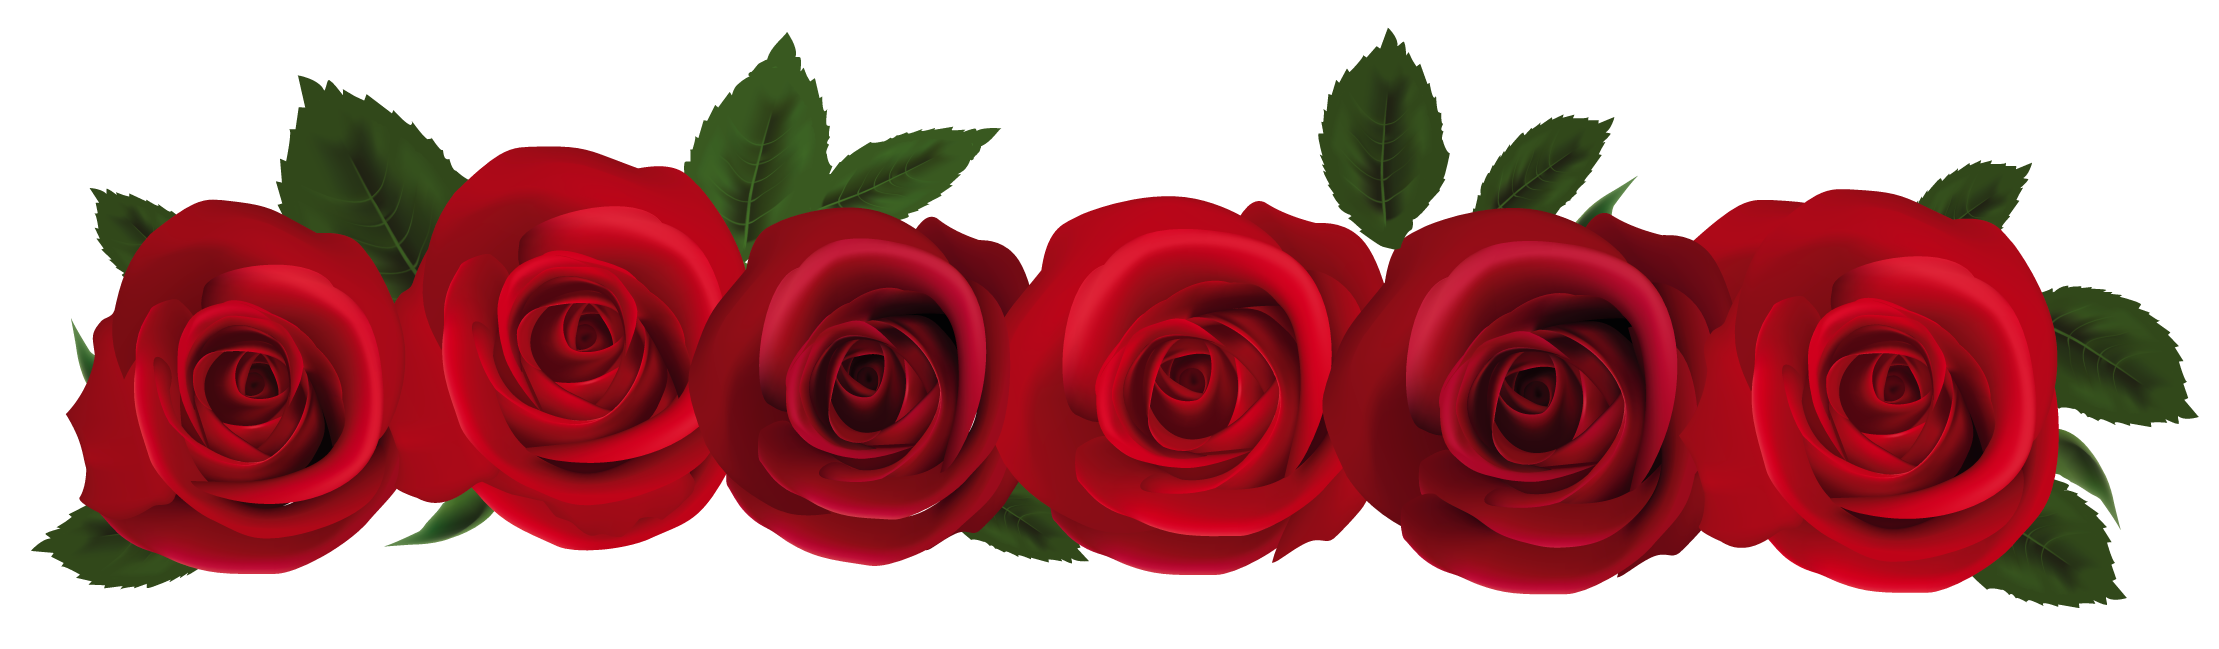 2219x649 Rose Border Clipart Png